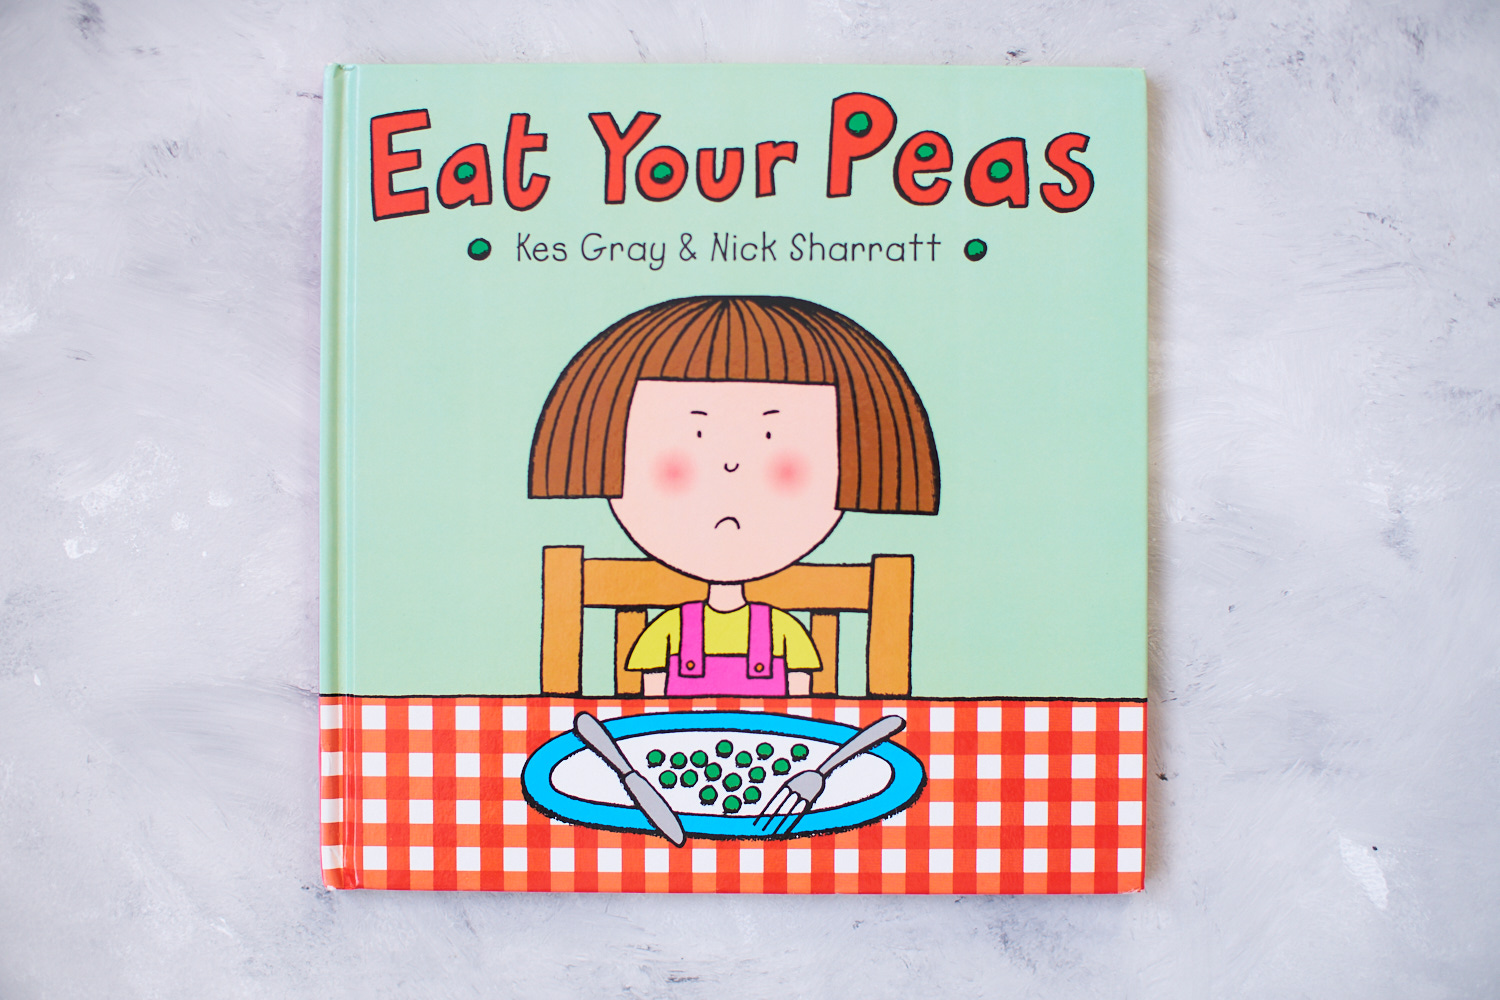 Eat your peas book